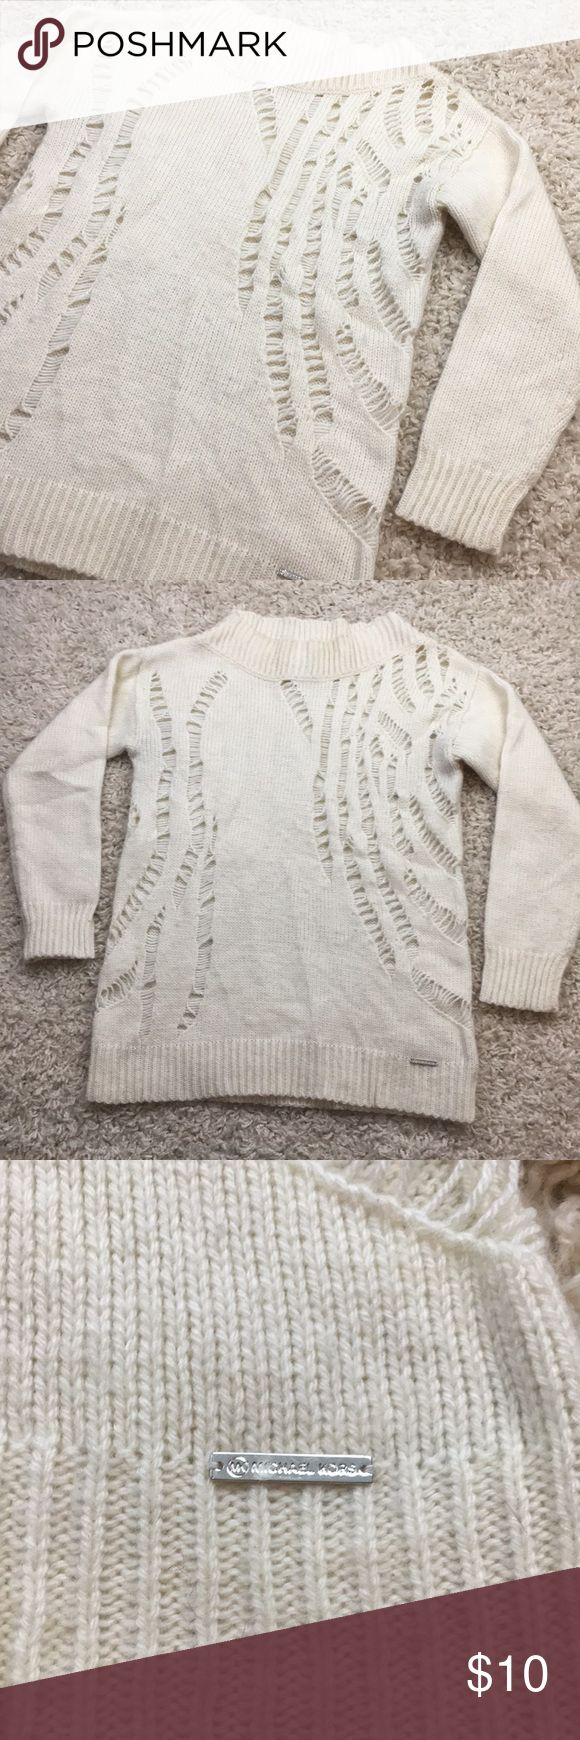 Michael Kors Wool Blend Sweater 🌲 This piece is from Michael Kors, and size small. Lovely ivory Knitted sweater with a wool blend fabric!  Overall this sweater is in good condition, though it does have some piling on the front. I am not able to locate my depiler but this is easily remedied if it is a bother!  No stains, rips or tears. Smoke free home!   All bundles get a shipping discount. ❤️ Michael Kors Sweaters Crew & Scoop Necks